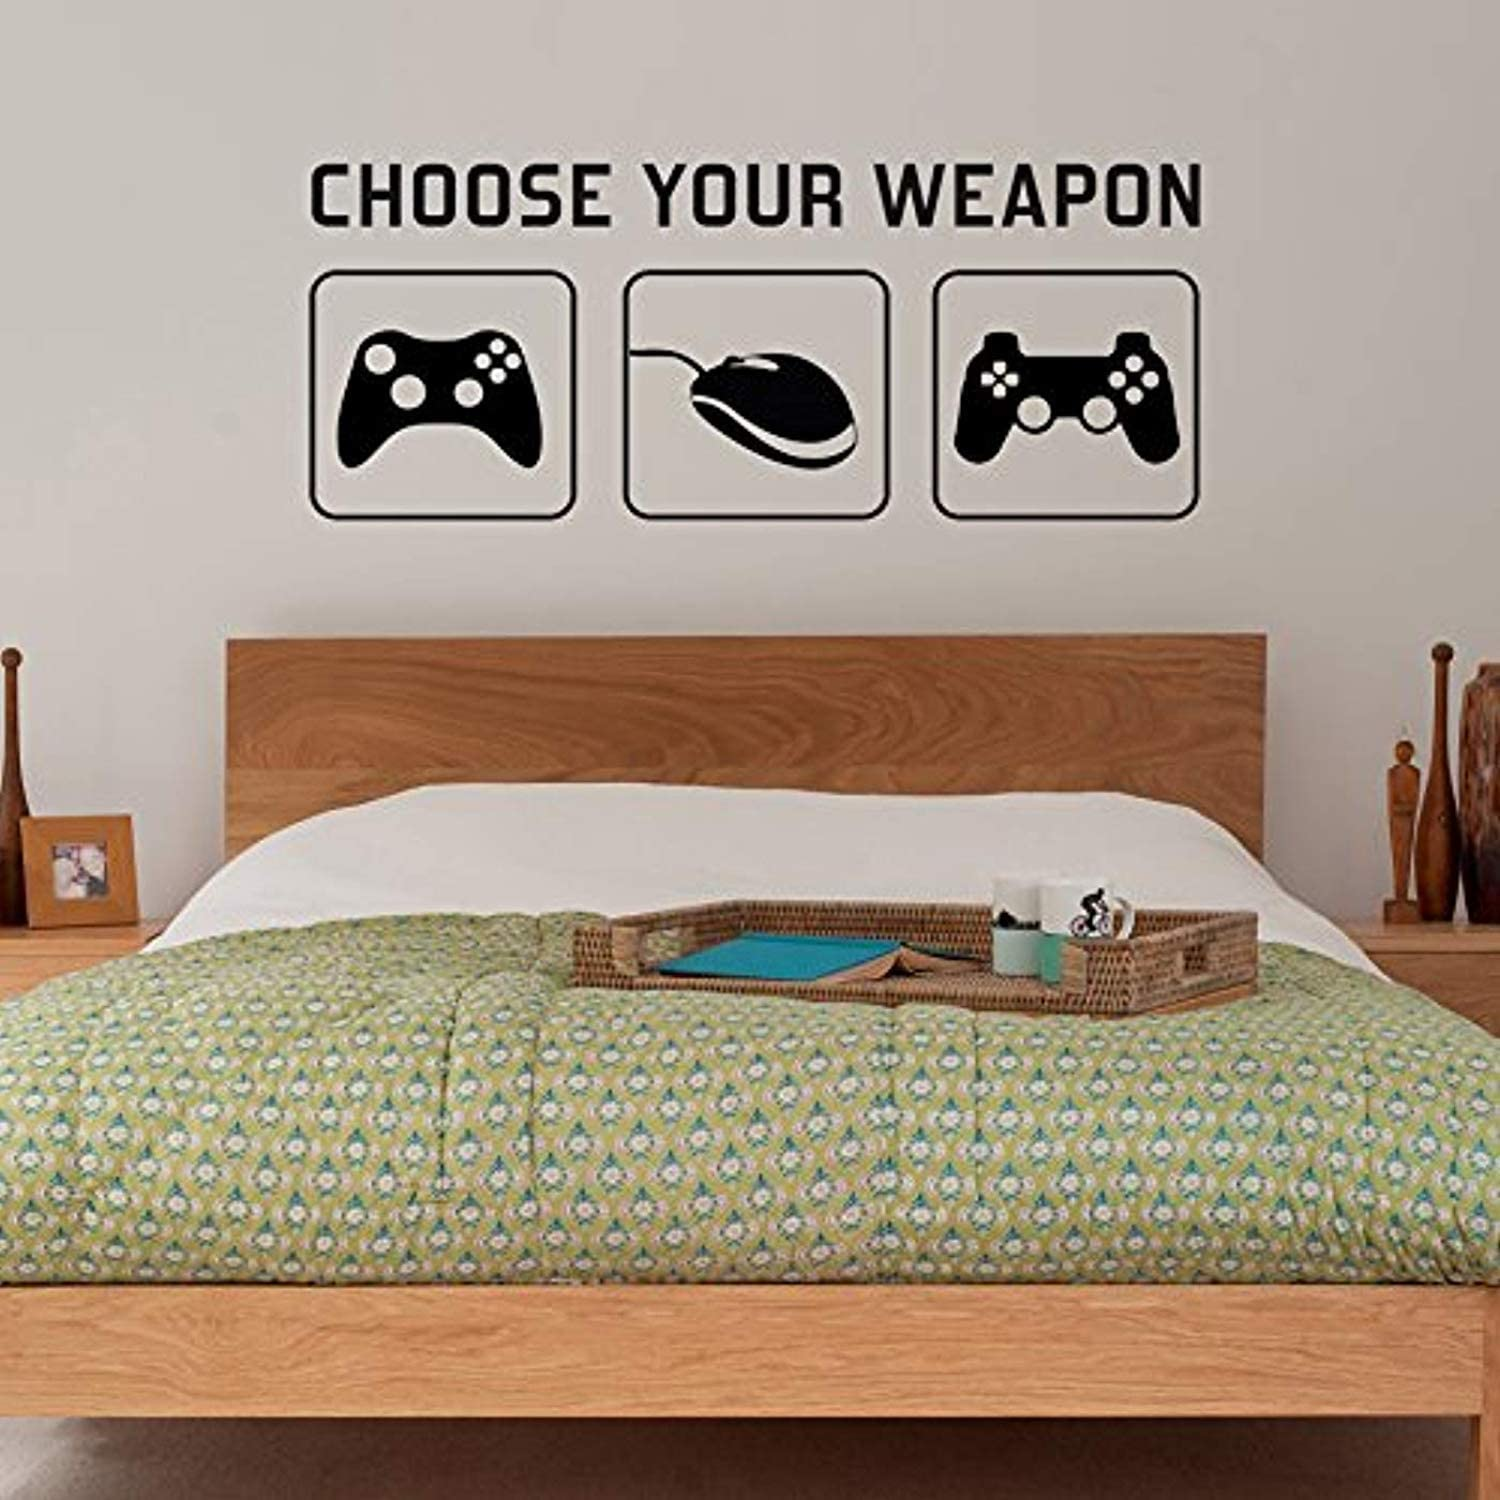 Amazon Com Wall Vinyl Decal Ra Choose Your Weapon Video Game Gaming Sticker Mural Kids Children Teenager Teens Bedroom Man Cave Room Art Ideas Canvas Home Decor Hds7817 Kitchen